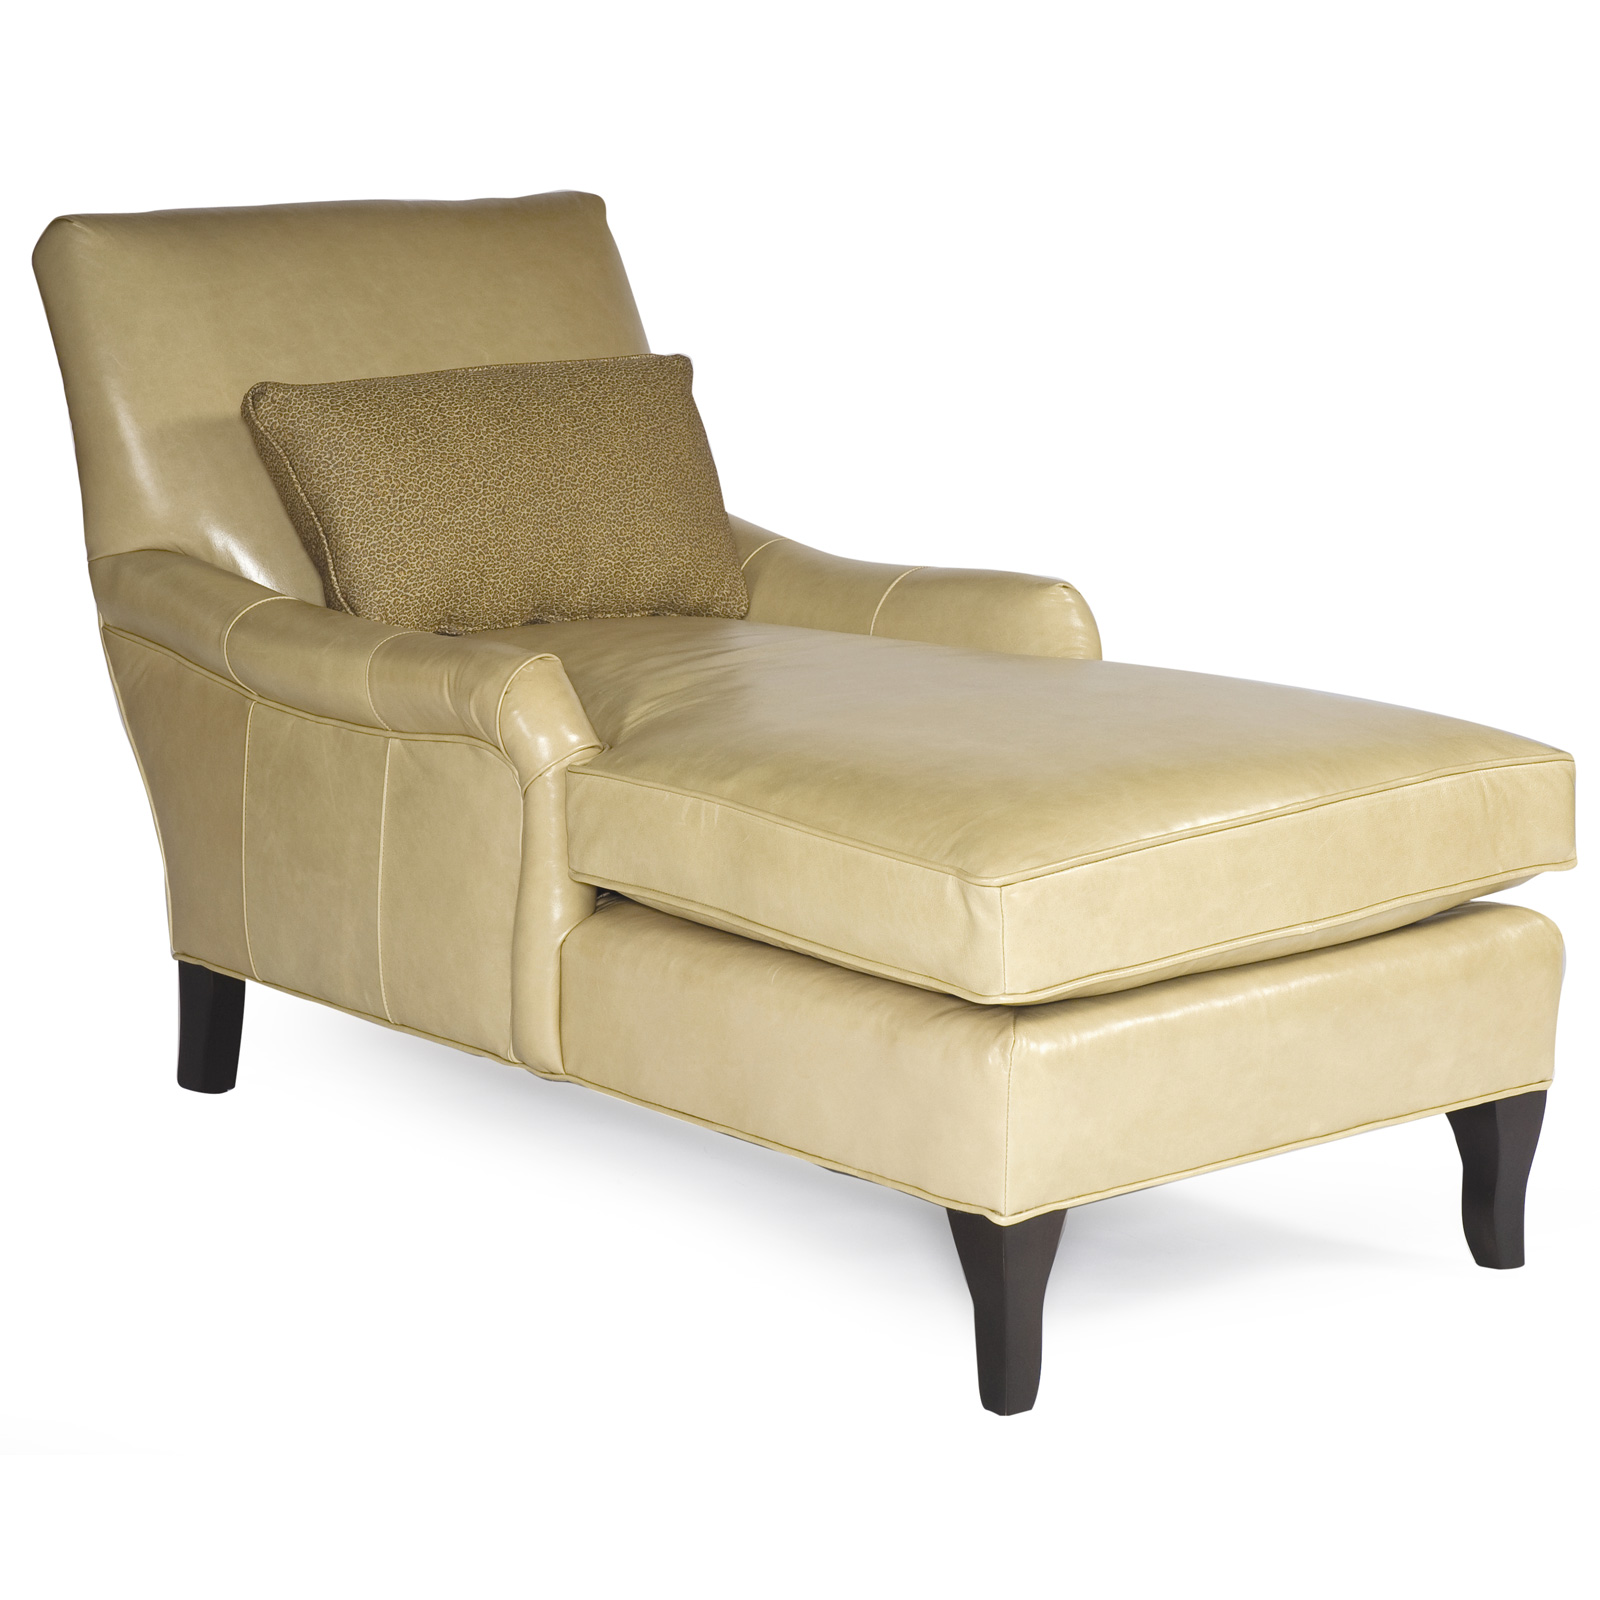 Indoor chaise lounges chaise lounges for sale hayneedle for Chaise for sale